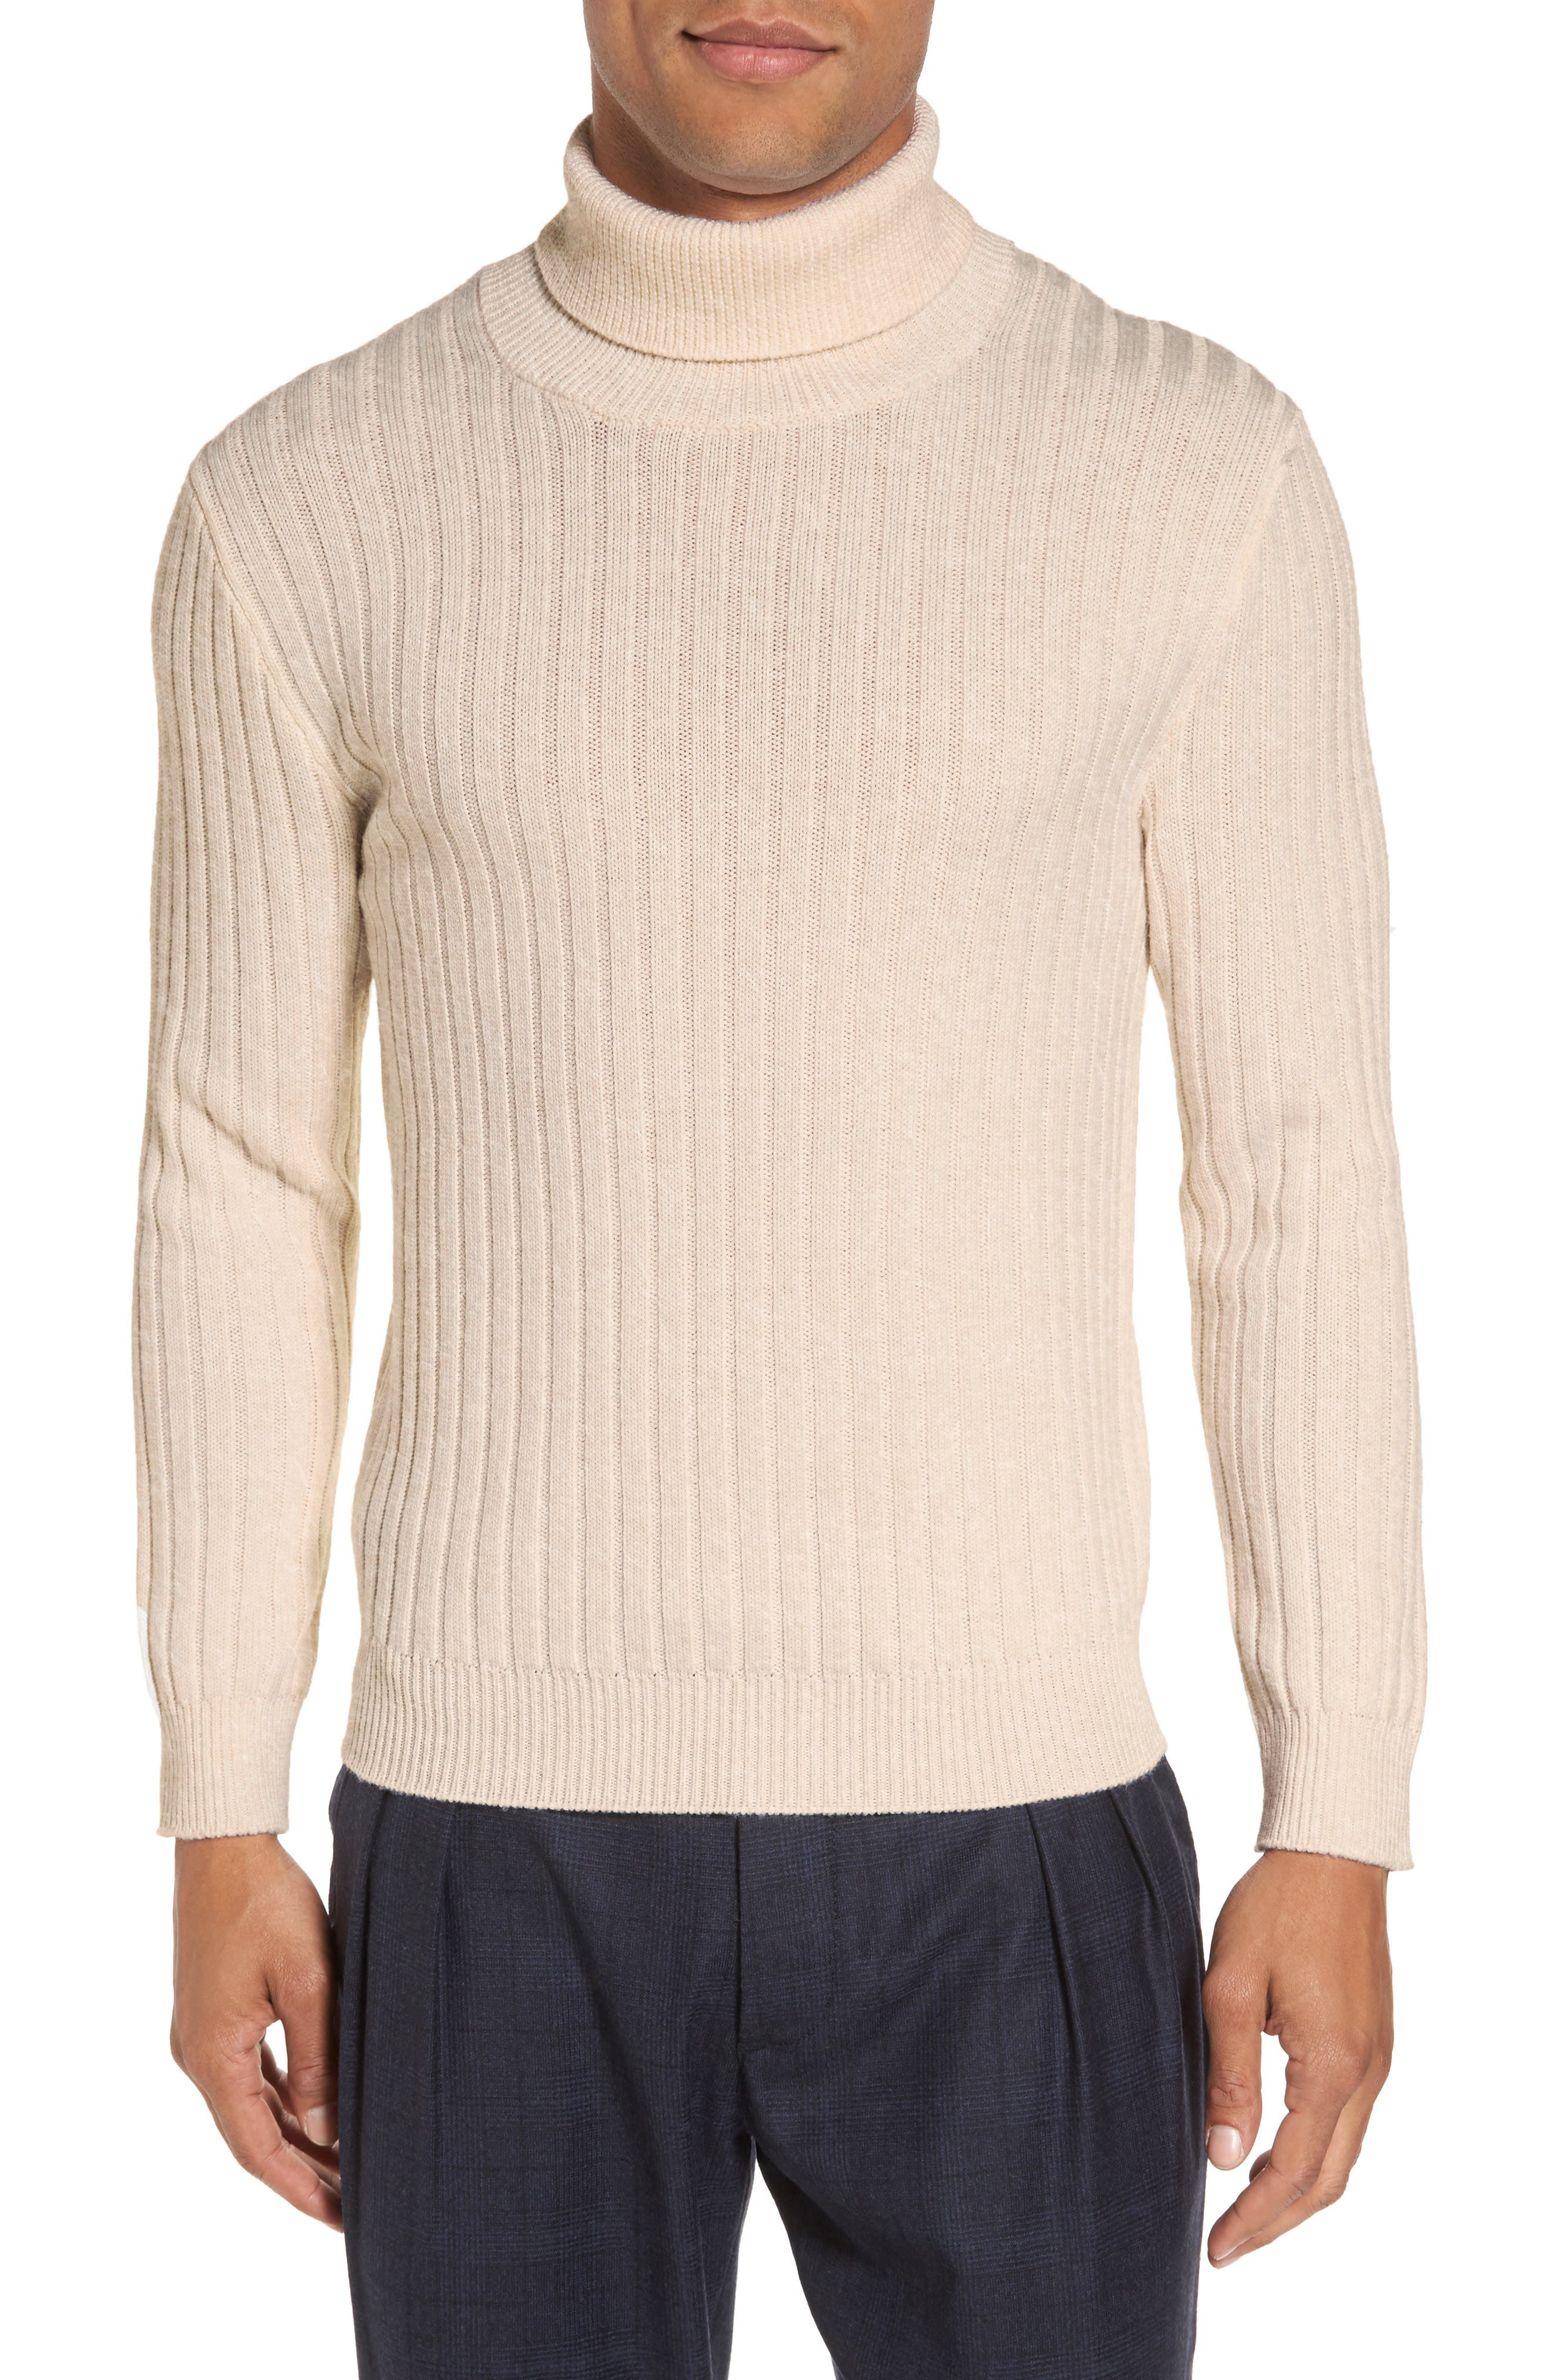 Ribbed Turtleneck Wool Sweater,                             Main thumbnail 1, color,                             Cream